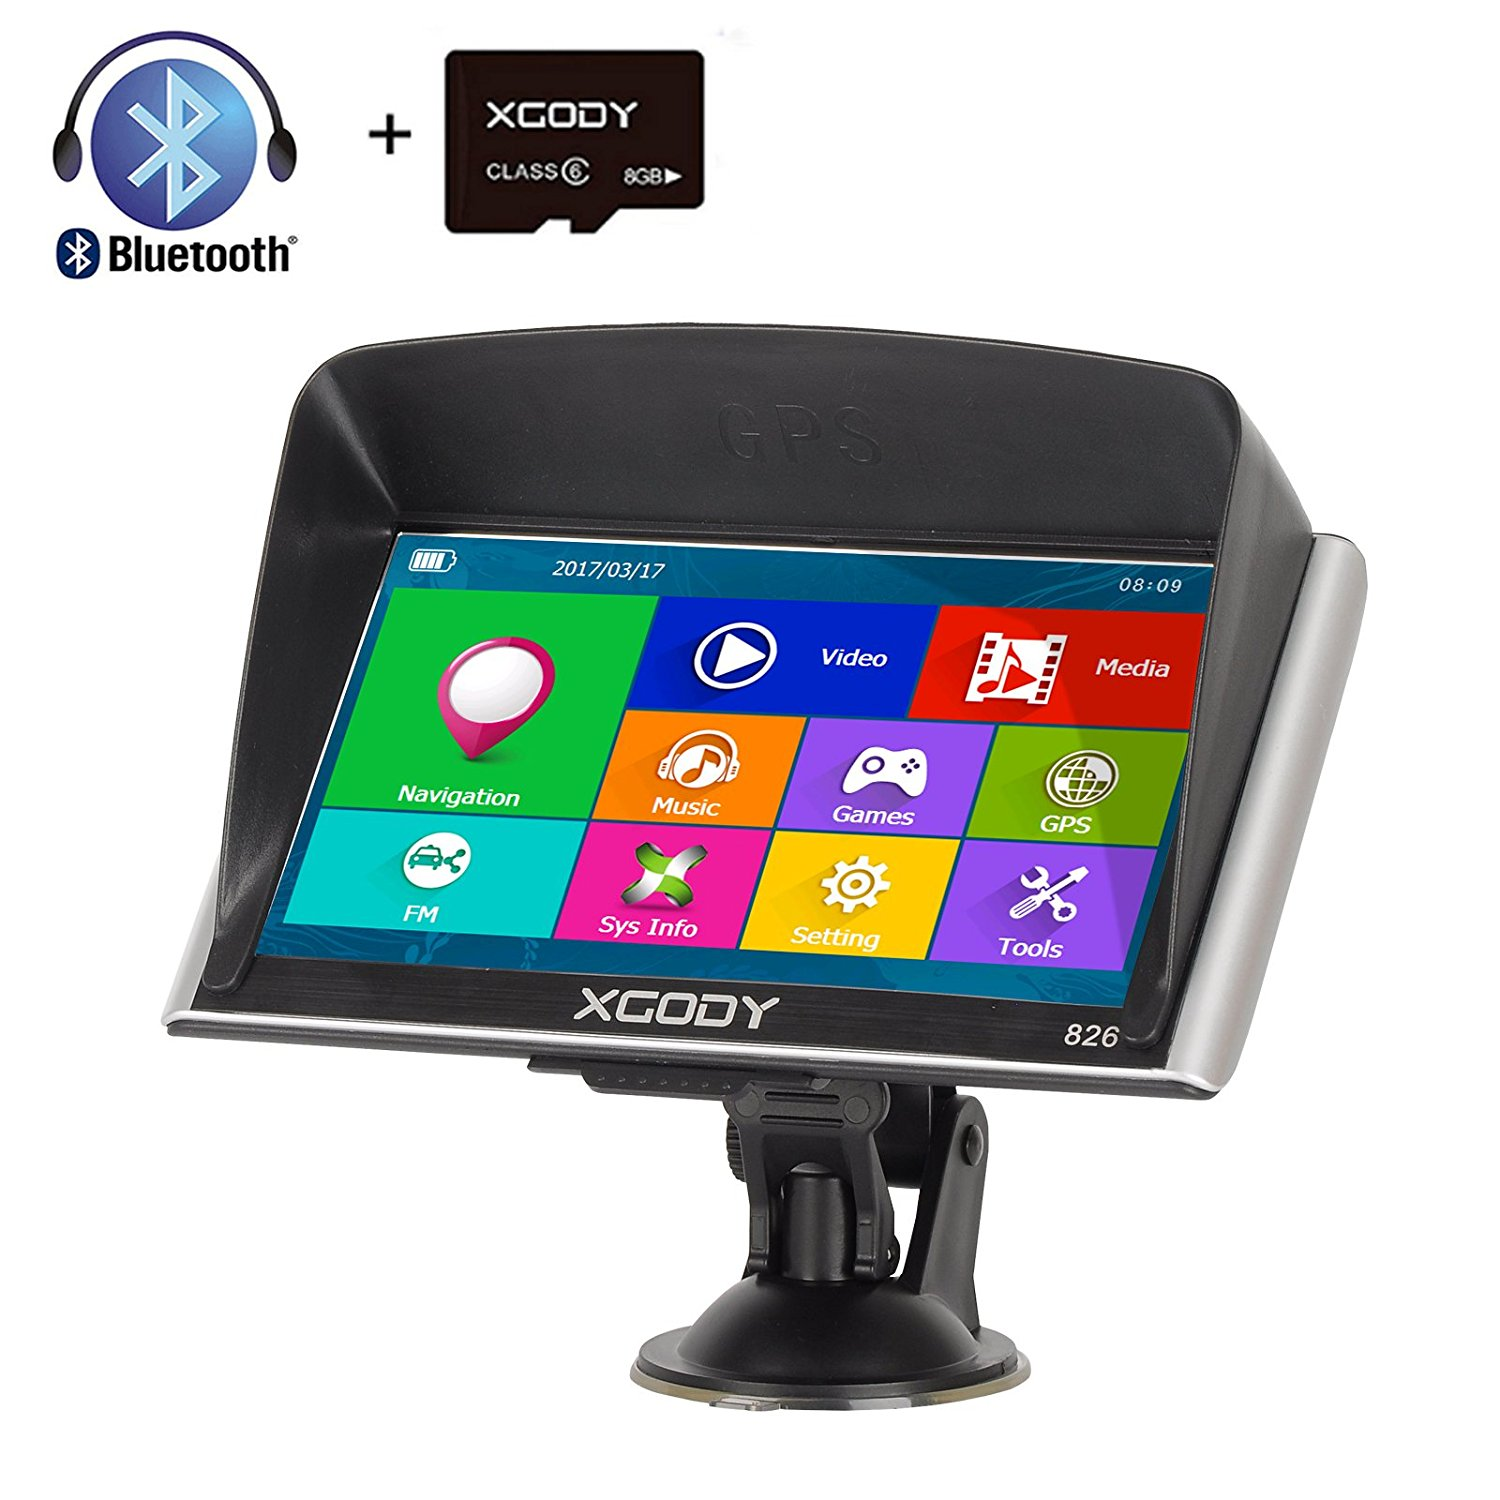 Xgody 16GB (8GB ROM + 8GB TF Card) 826BT Car Truck GPS Navigation System